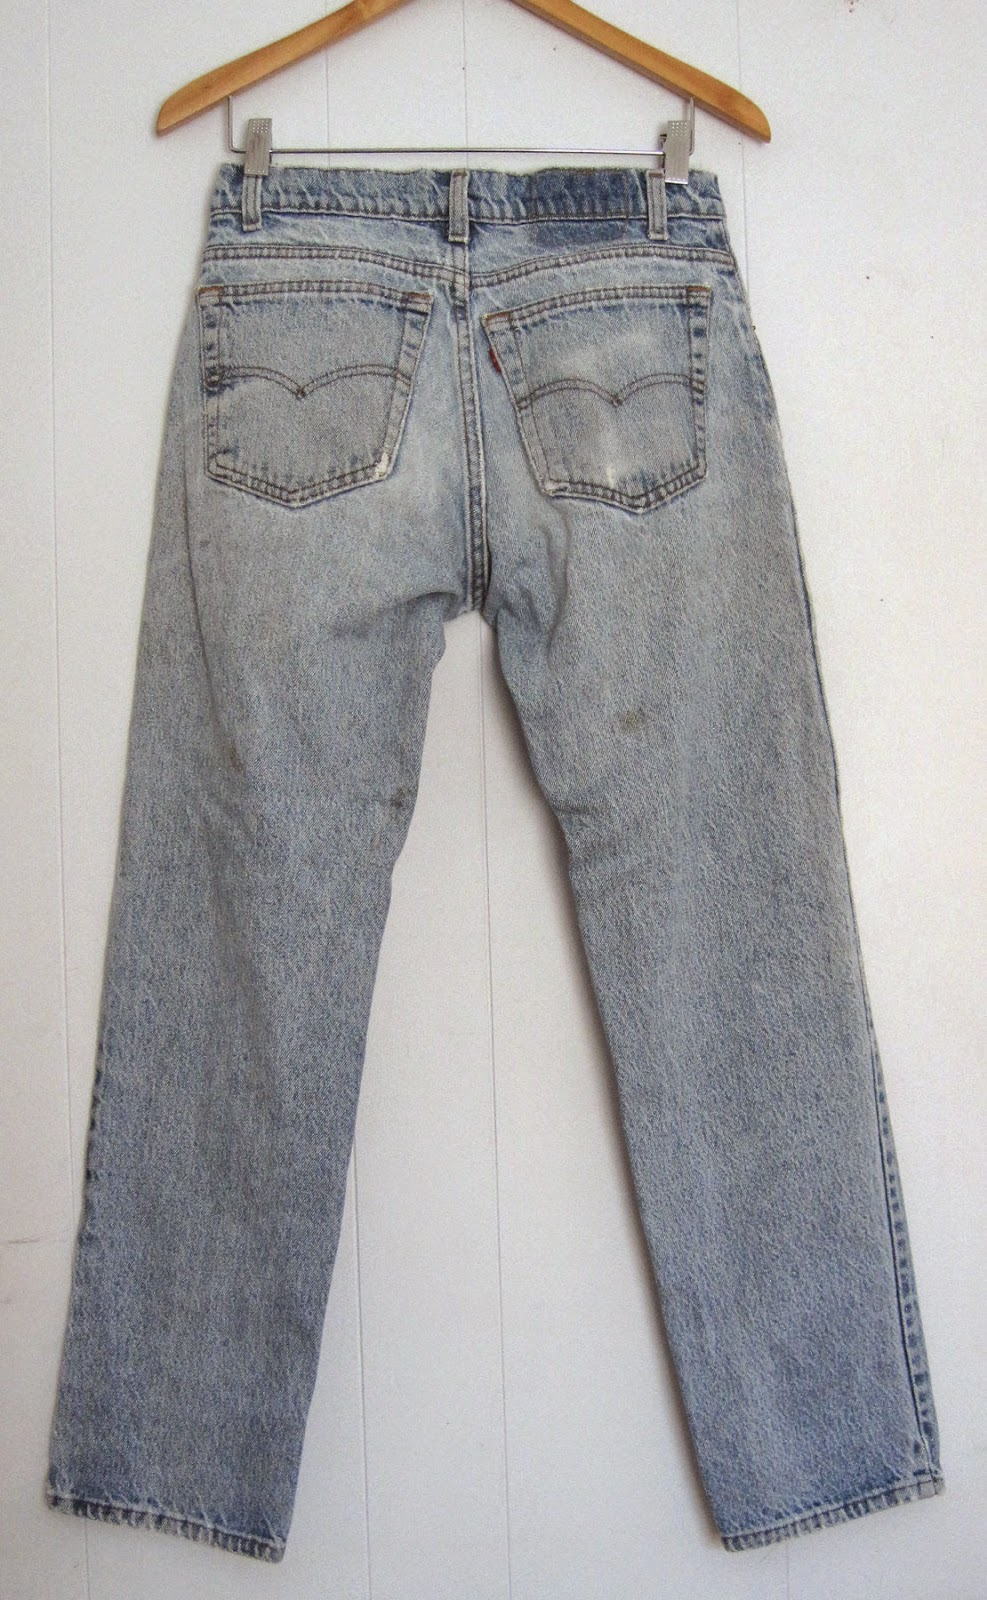 Vintage 90's Blogger Blue Jeans Stained and Faded